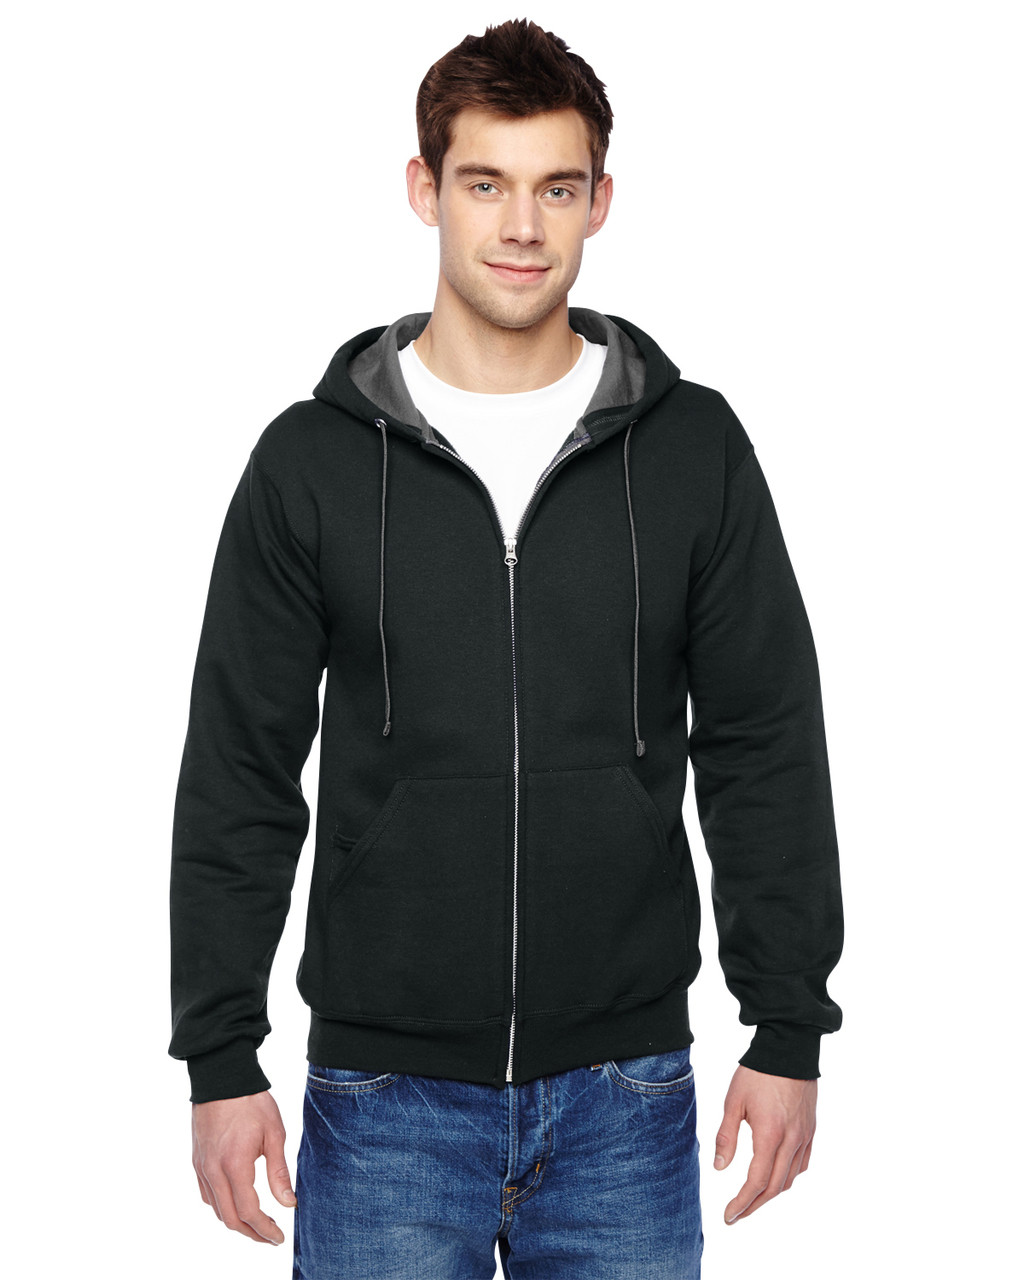 Black - SF73R Fruit Of The Loom Softspun Full-Zip Hooded Sweatshirt | Blankclothing.ca